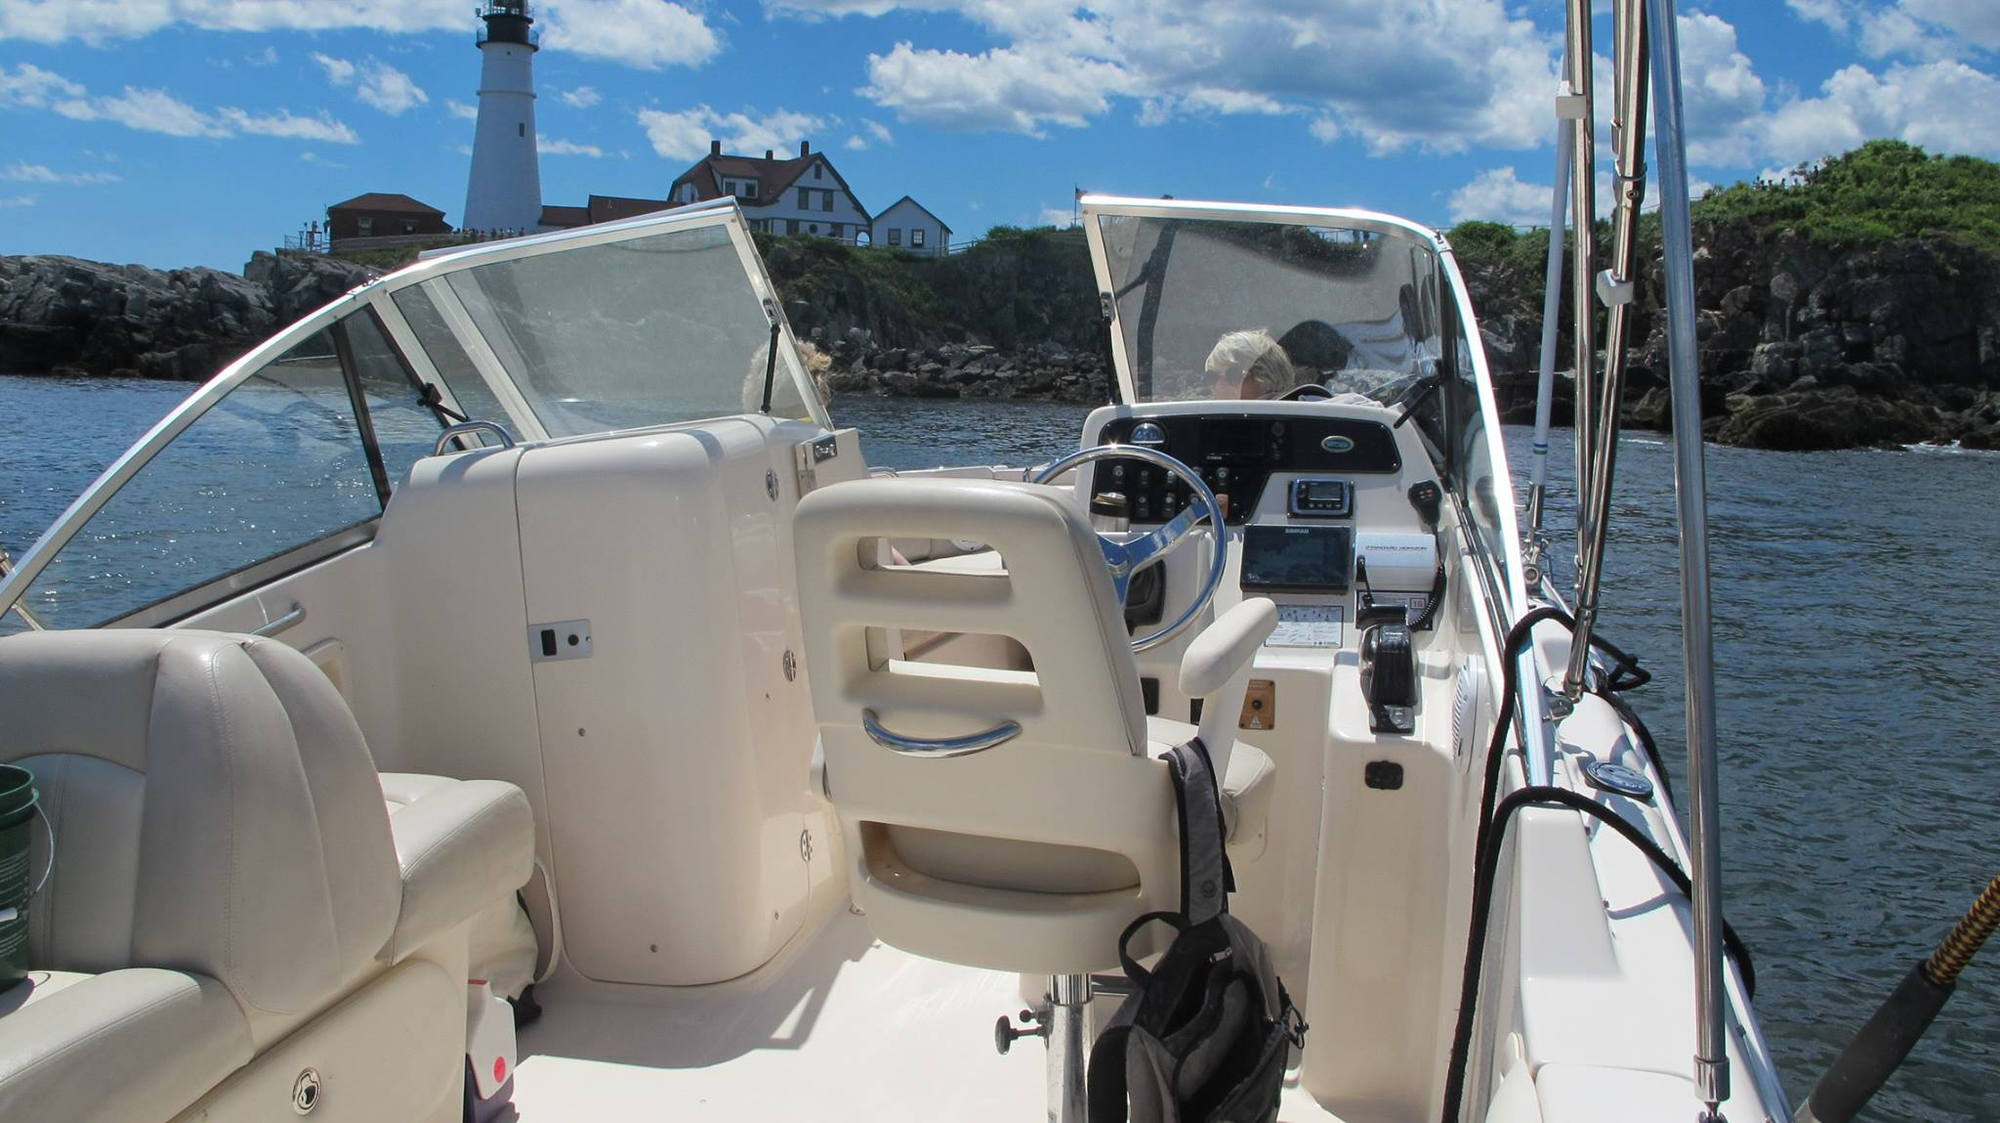 Boat seat vinyl replacement - The Hull Truth - Boating and Fishing Forum